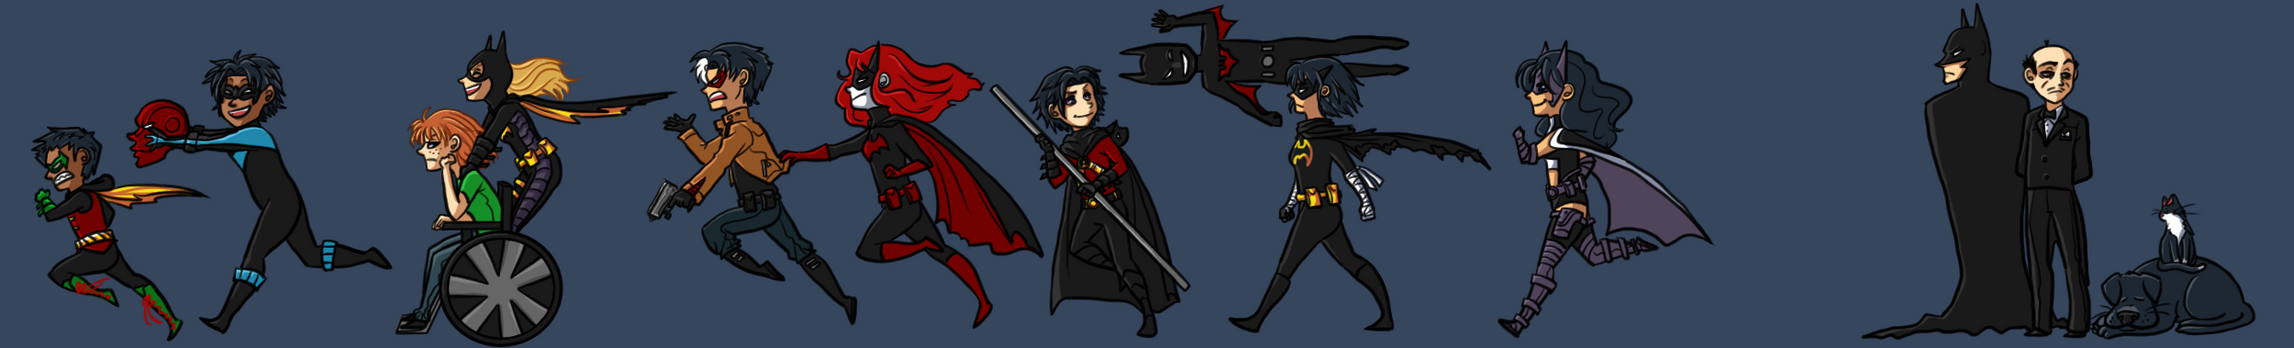 Batfam on Parade by DaPandaBanda